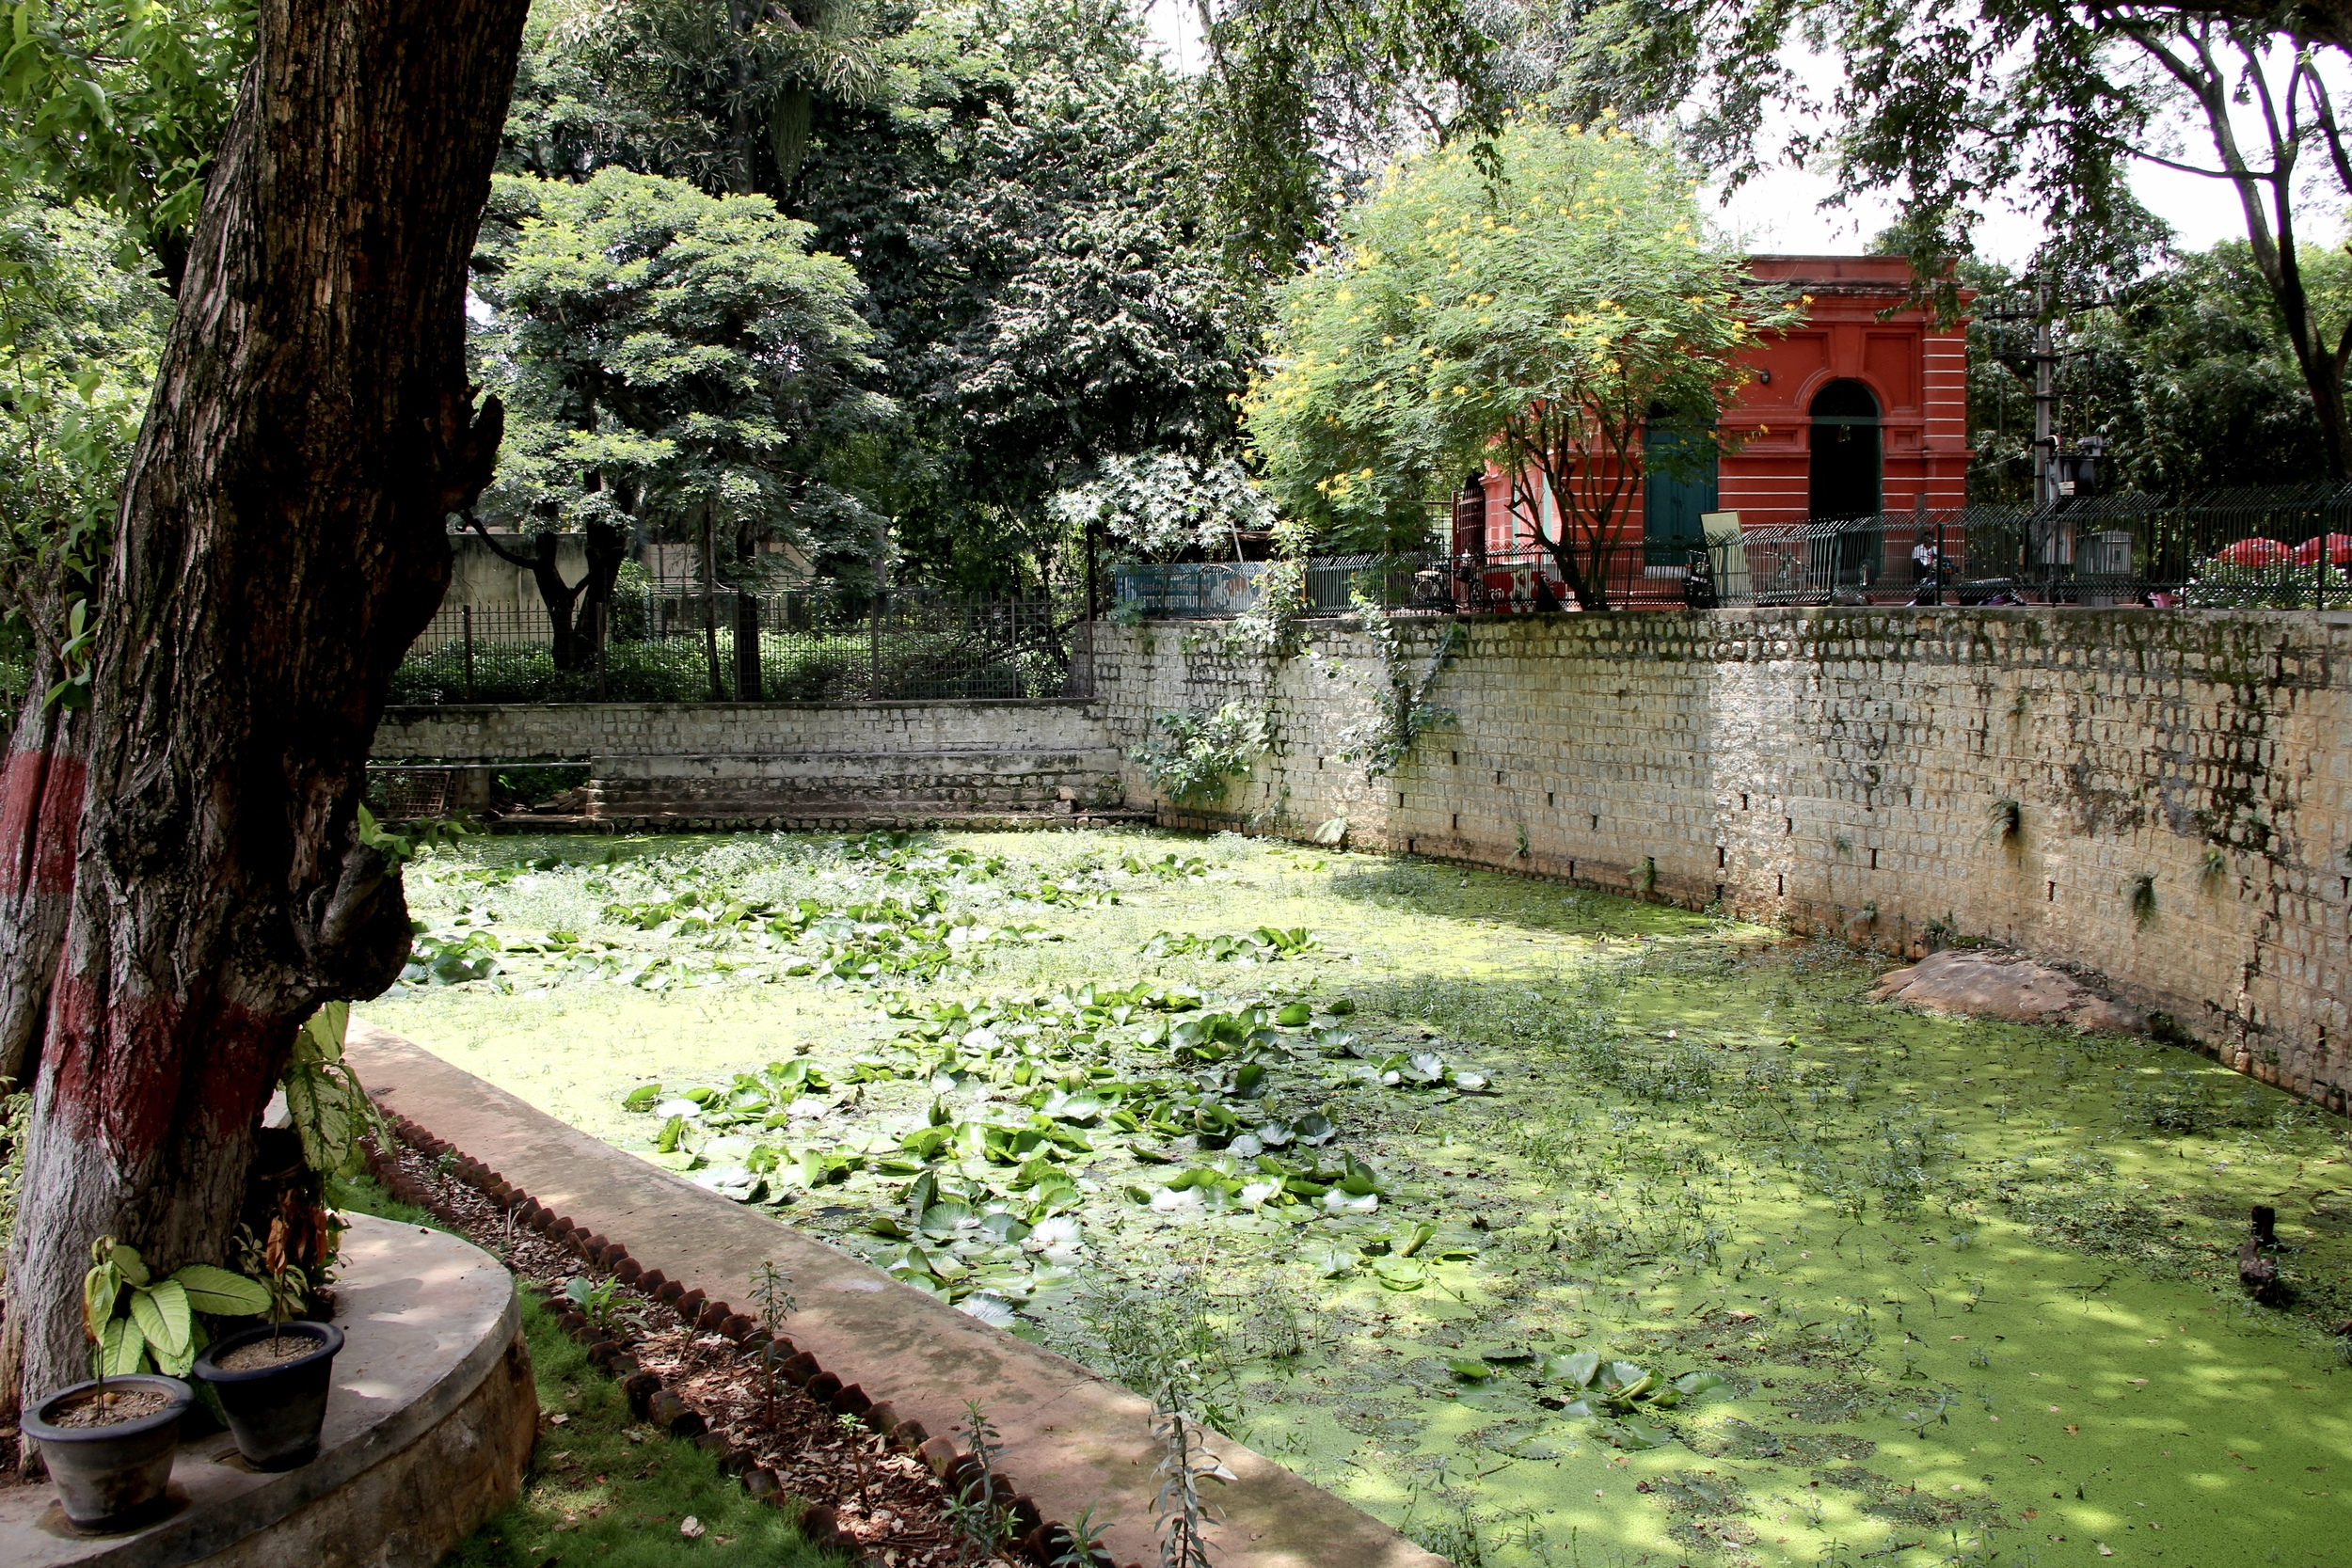 lily pond in bangalore, india | beyond ordinary guides